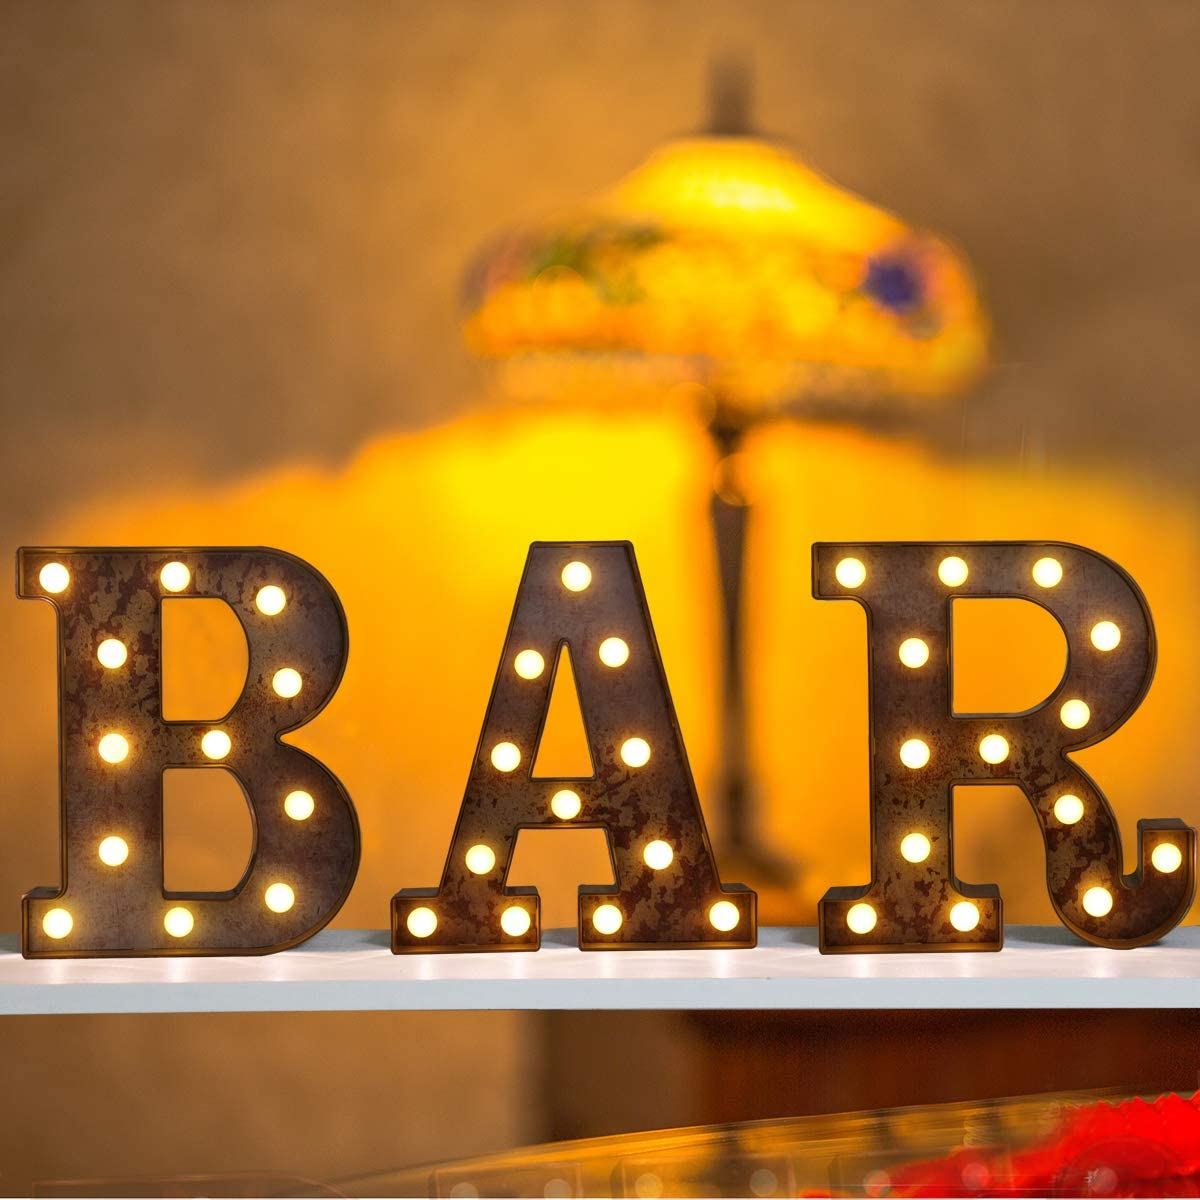 Elnsivo Vintage Marquee Bar Letters with Lights, Illuminated Bar Signs Industrial Style Lighted Alphabet Bar Sign Night Lights for Bar, Pub, Bistro, Party, Wall Decor(Rust Effect Battery Power BAR)